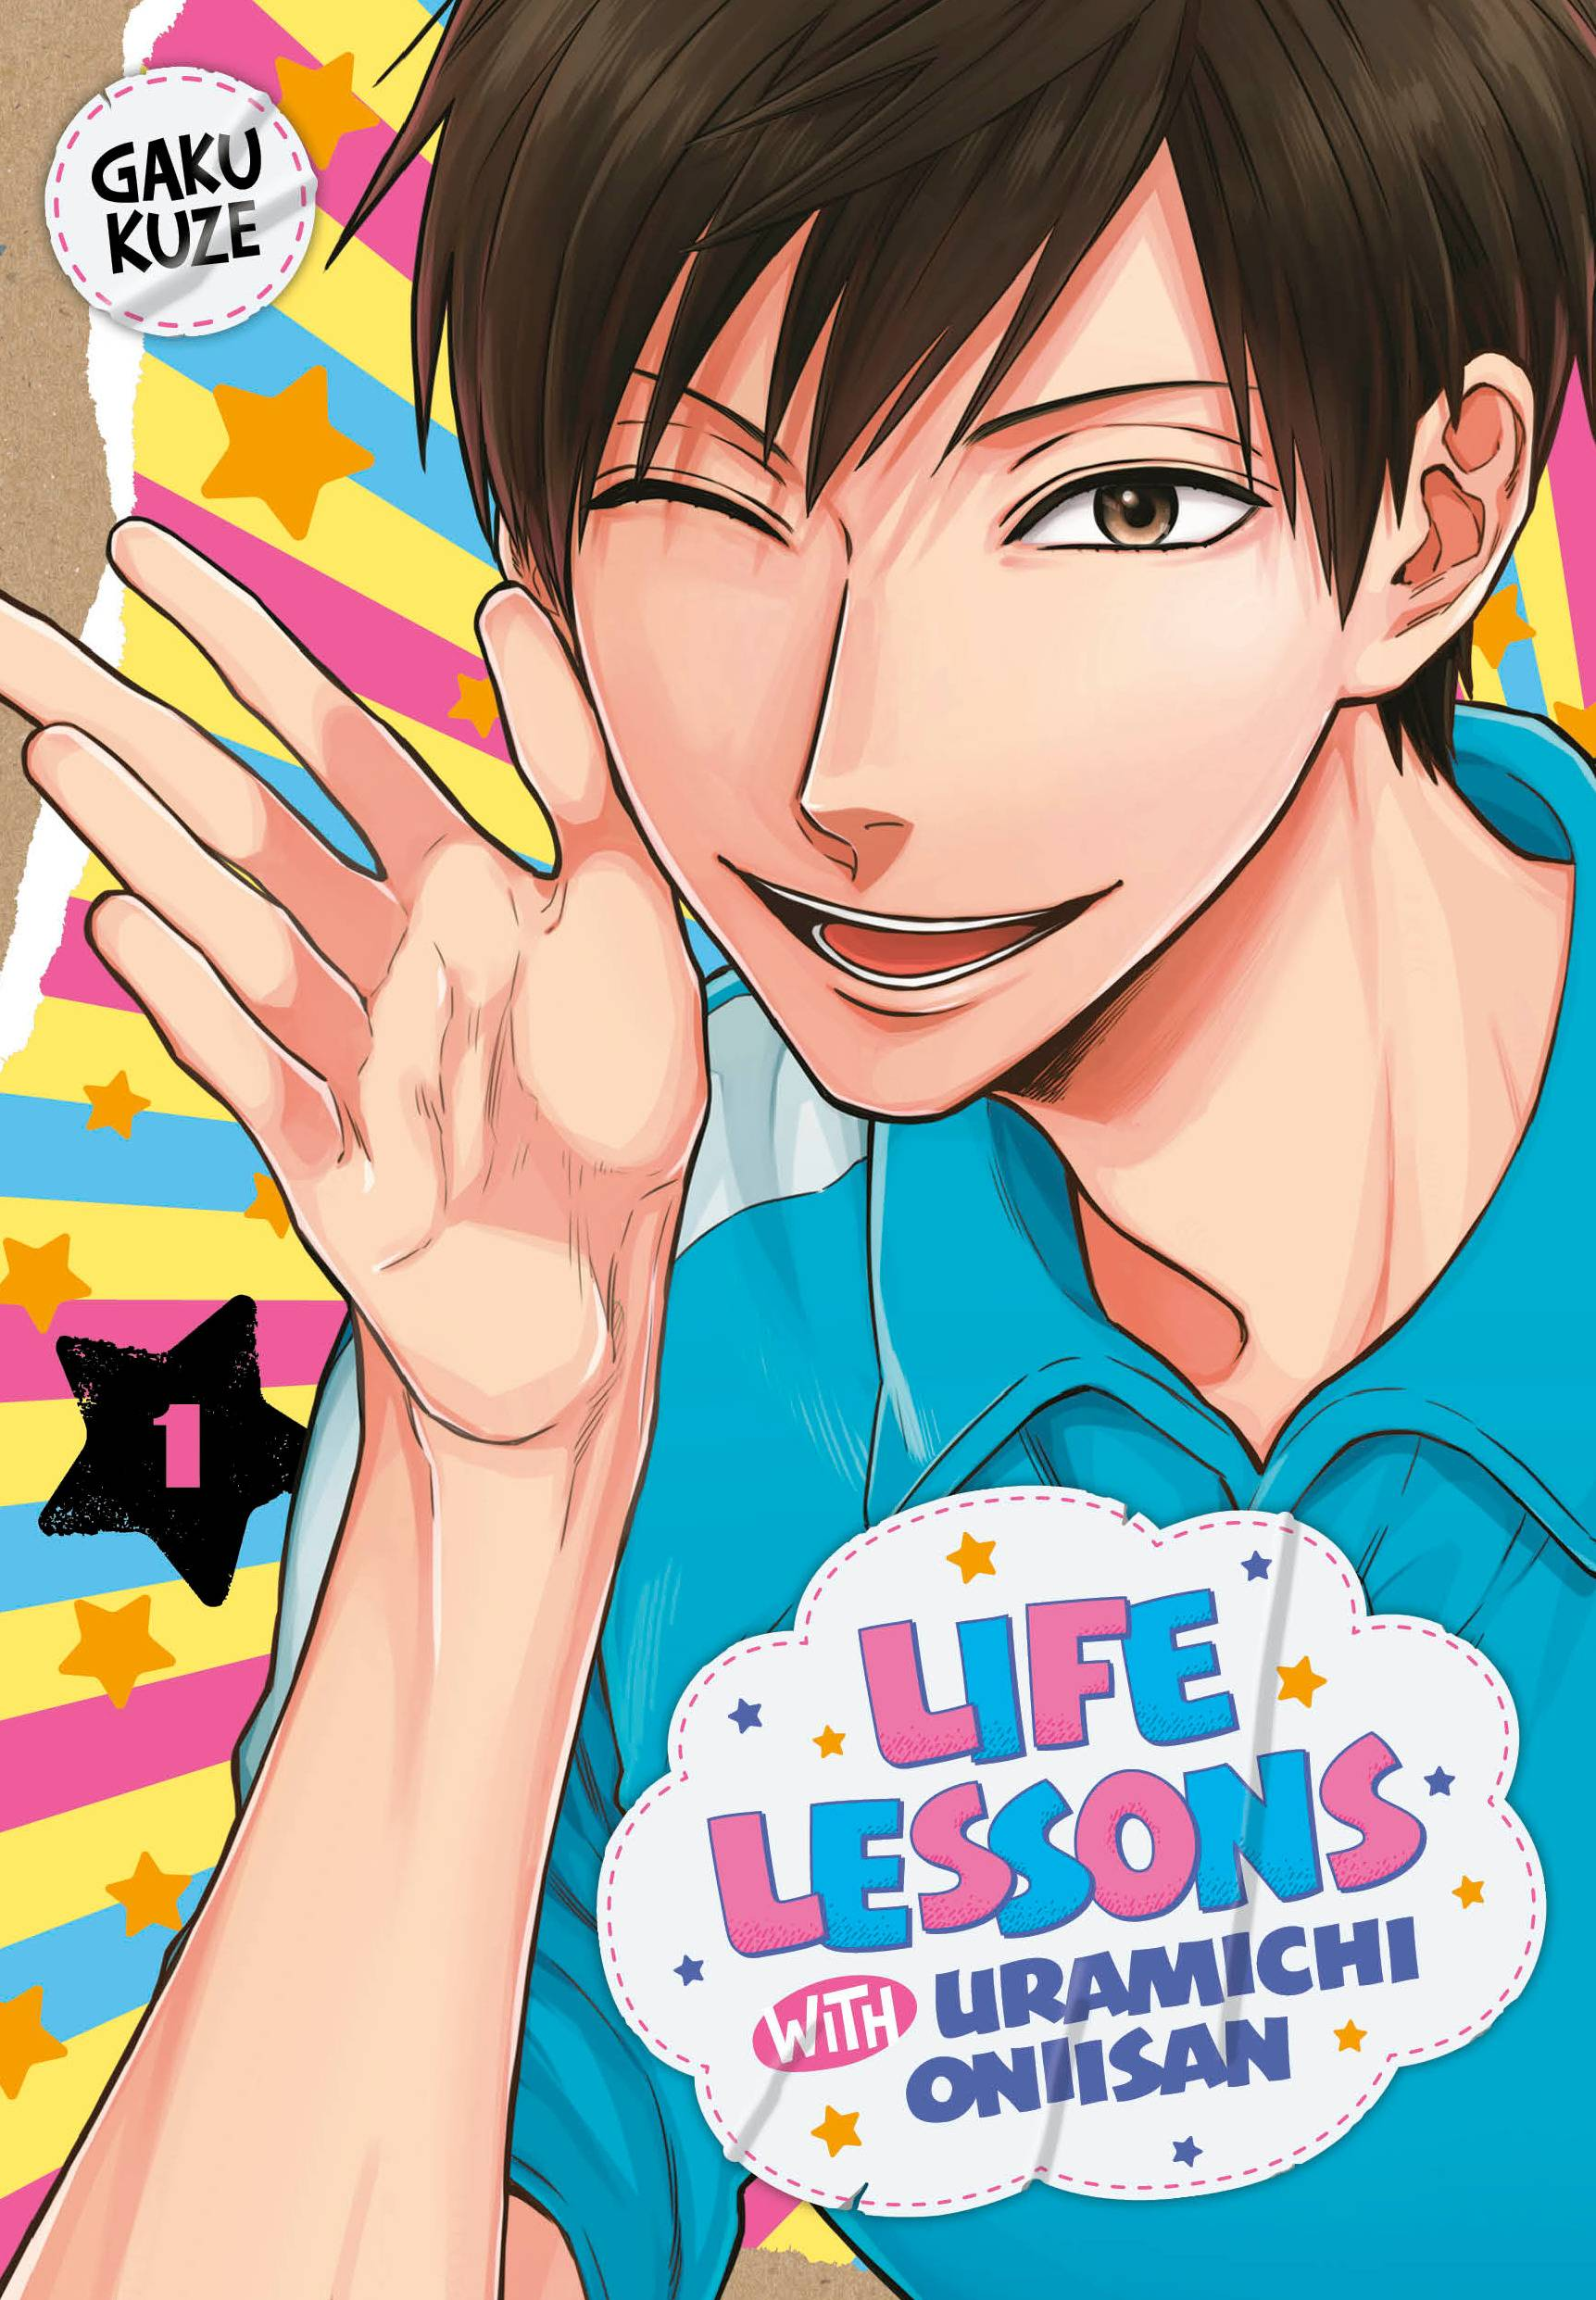 LIFE LESSONS WITH URAMICHI ONIISAN GN 01